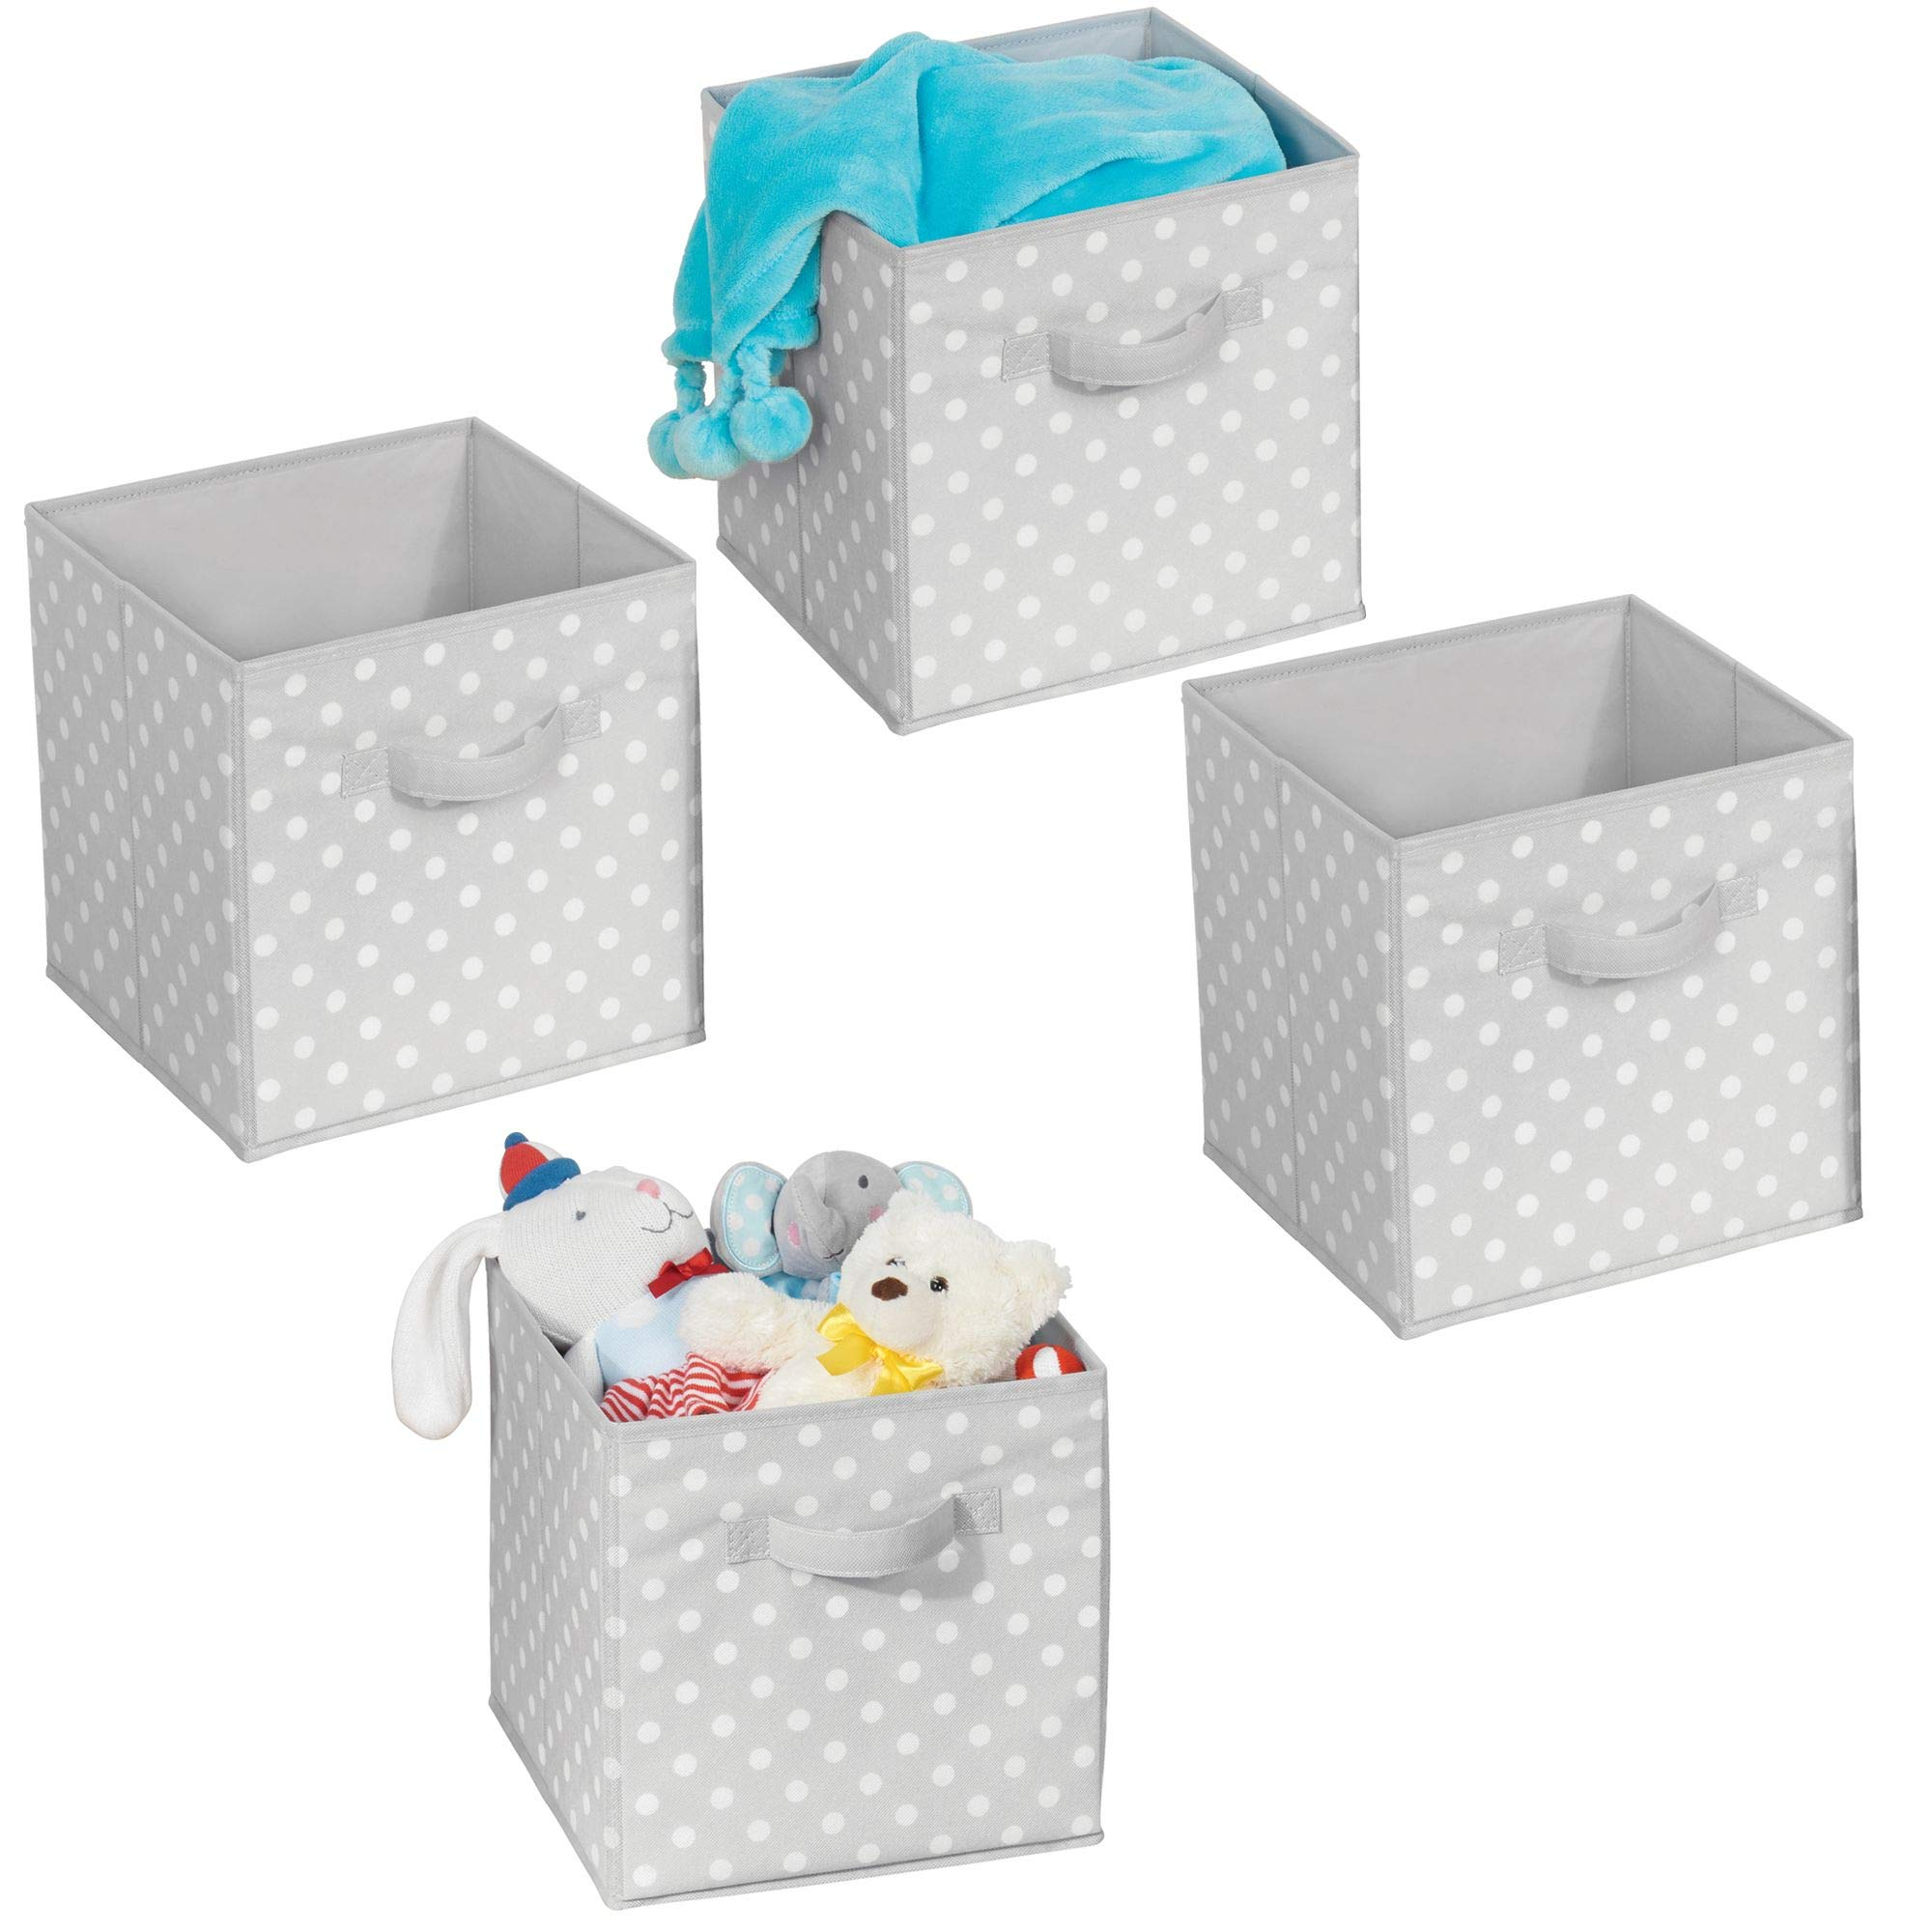 mDesign Soft Fabric Closet Organizer Bin Box - Front Handle - Cube Storage for Child/Kids Room, Nursery, Toy Room, Furniture Organization - 10.5'' high - 4 Pack, Gray with White Polka Dots by mDesign